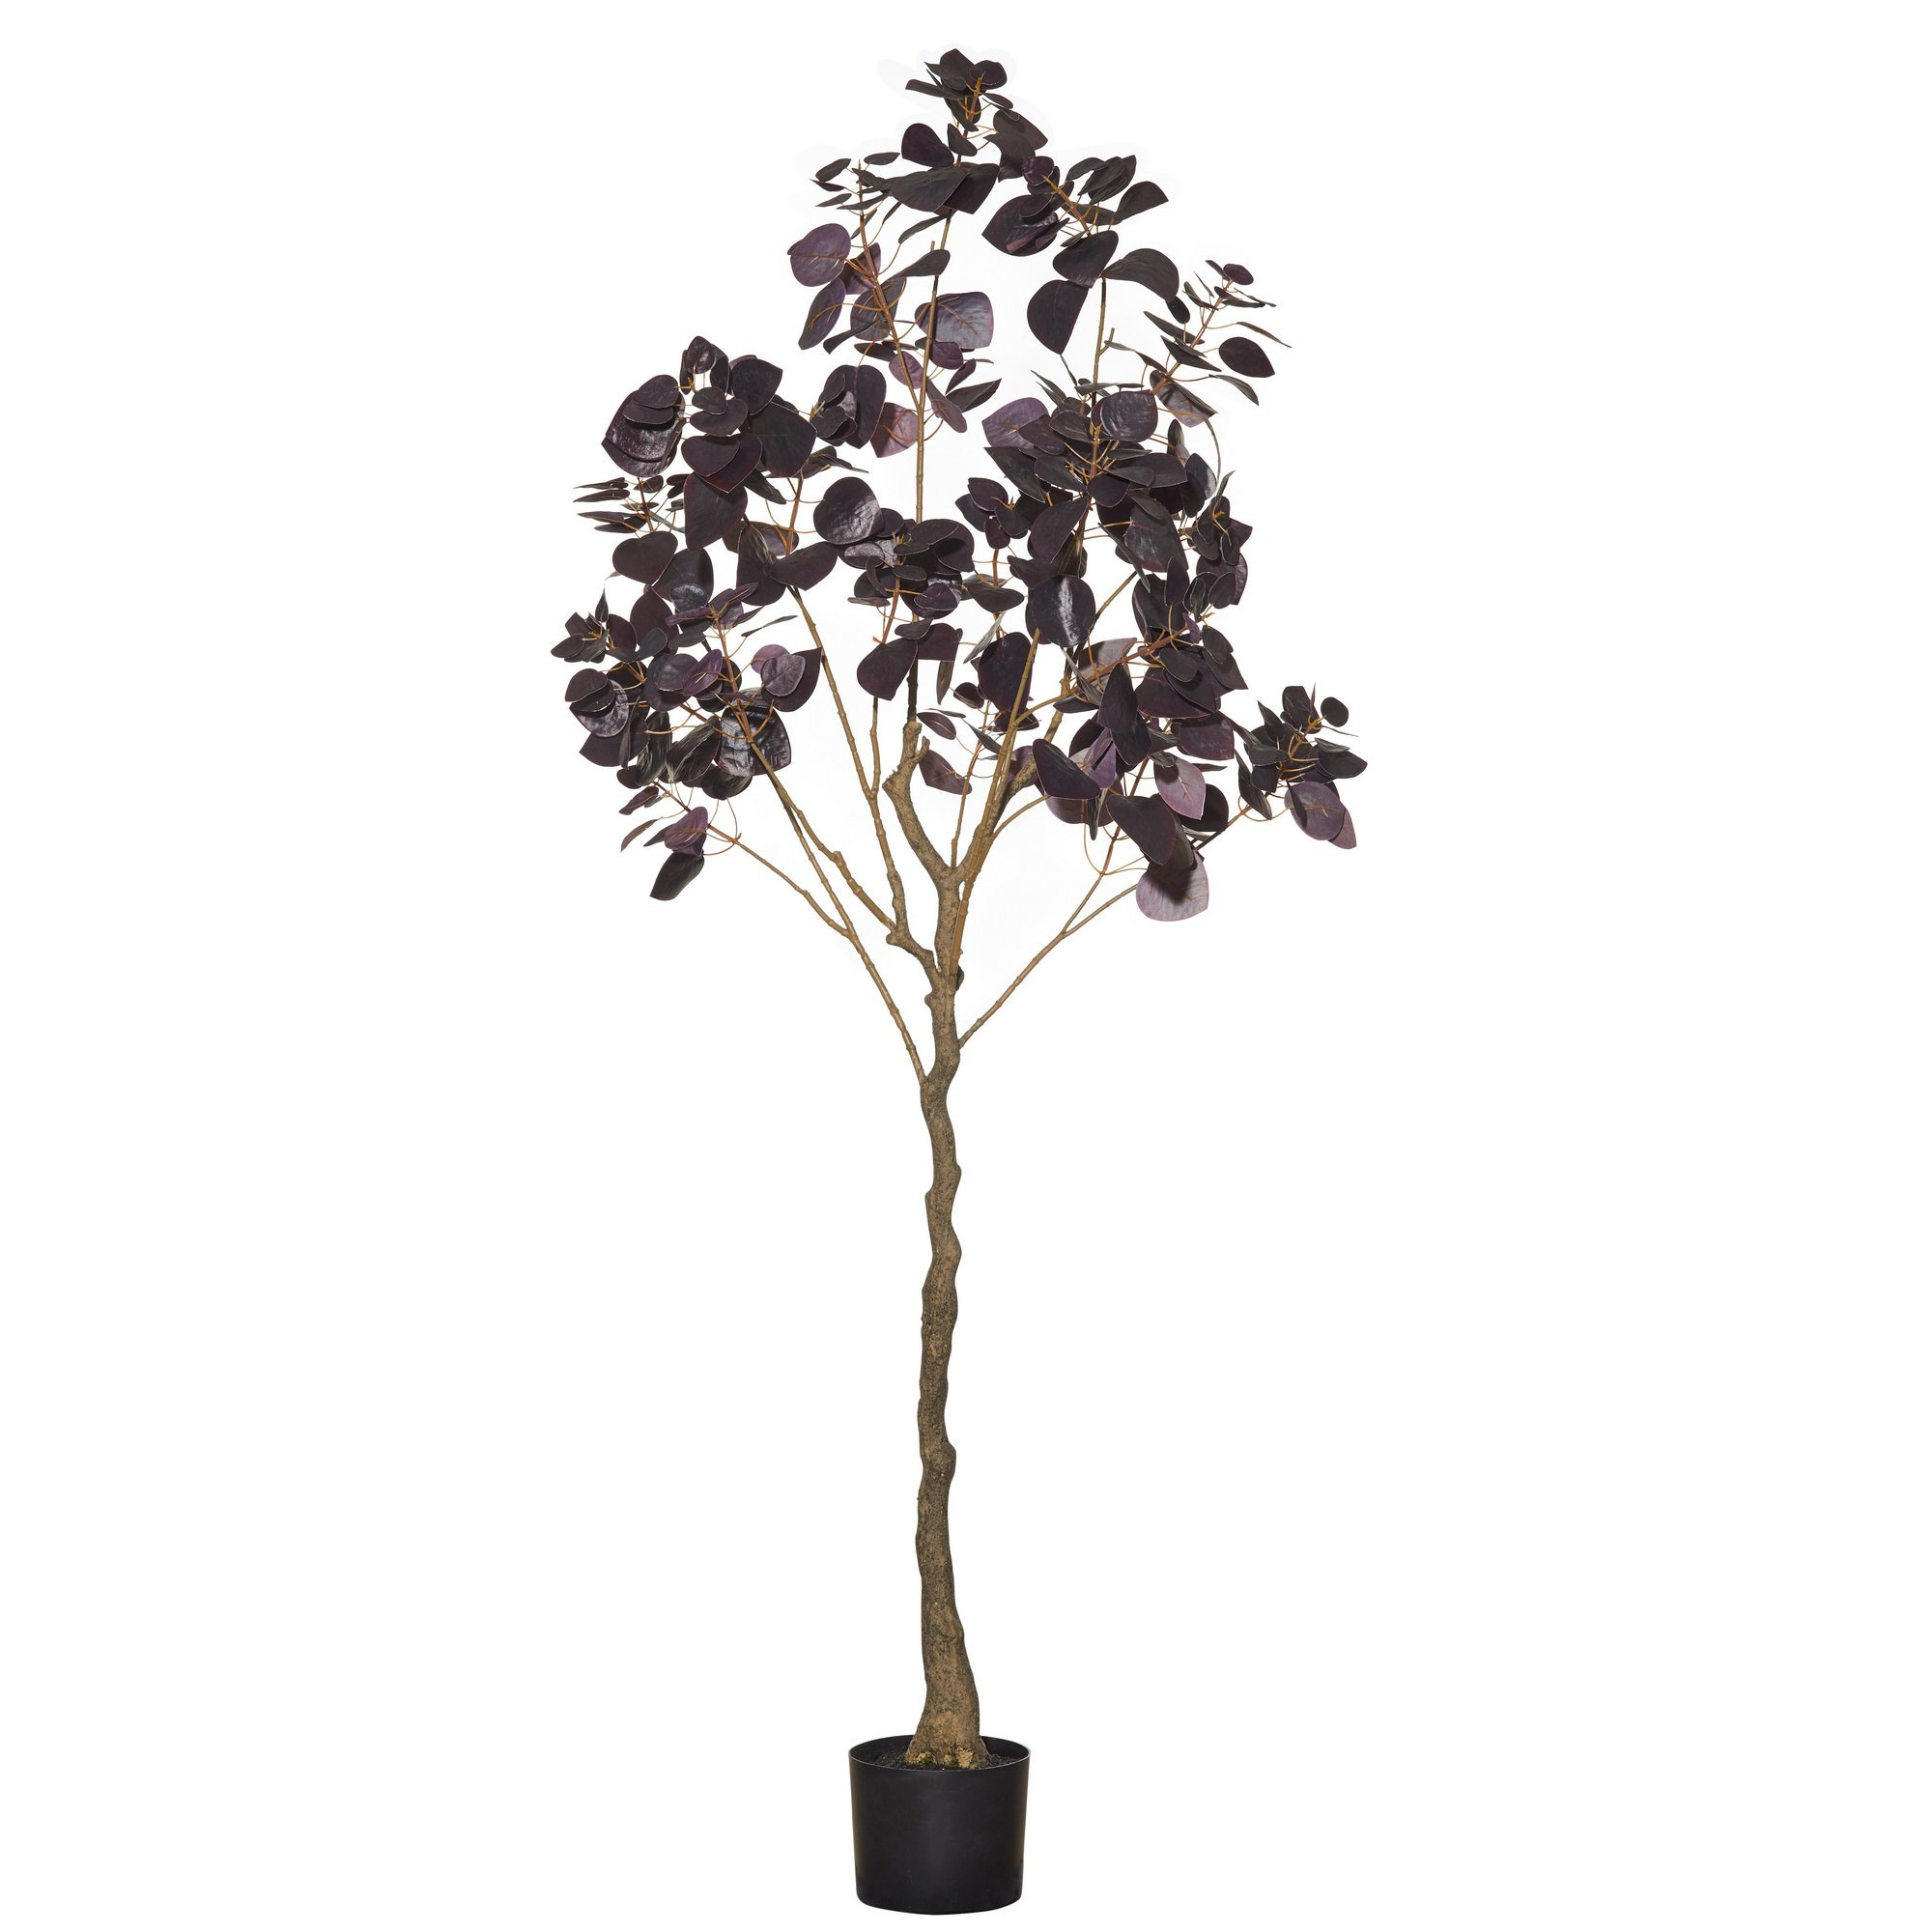 Potted Artificial Smoke Leaf Tree, 180cm